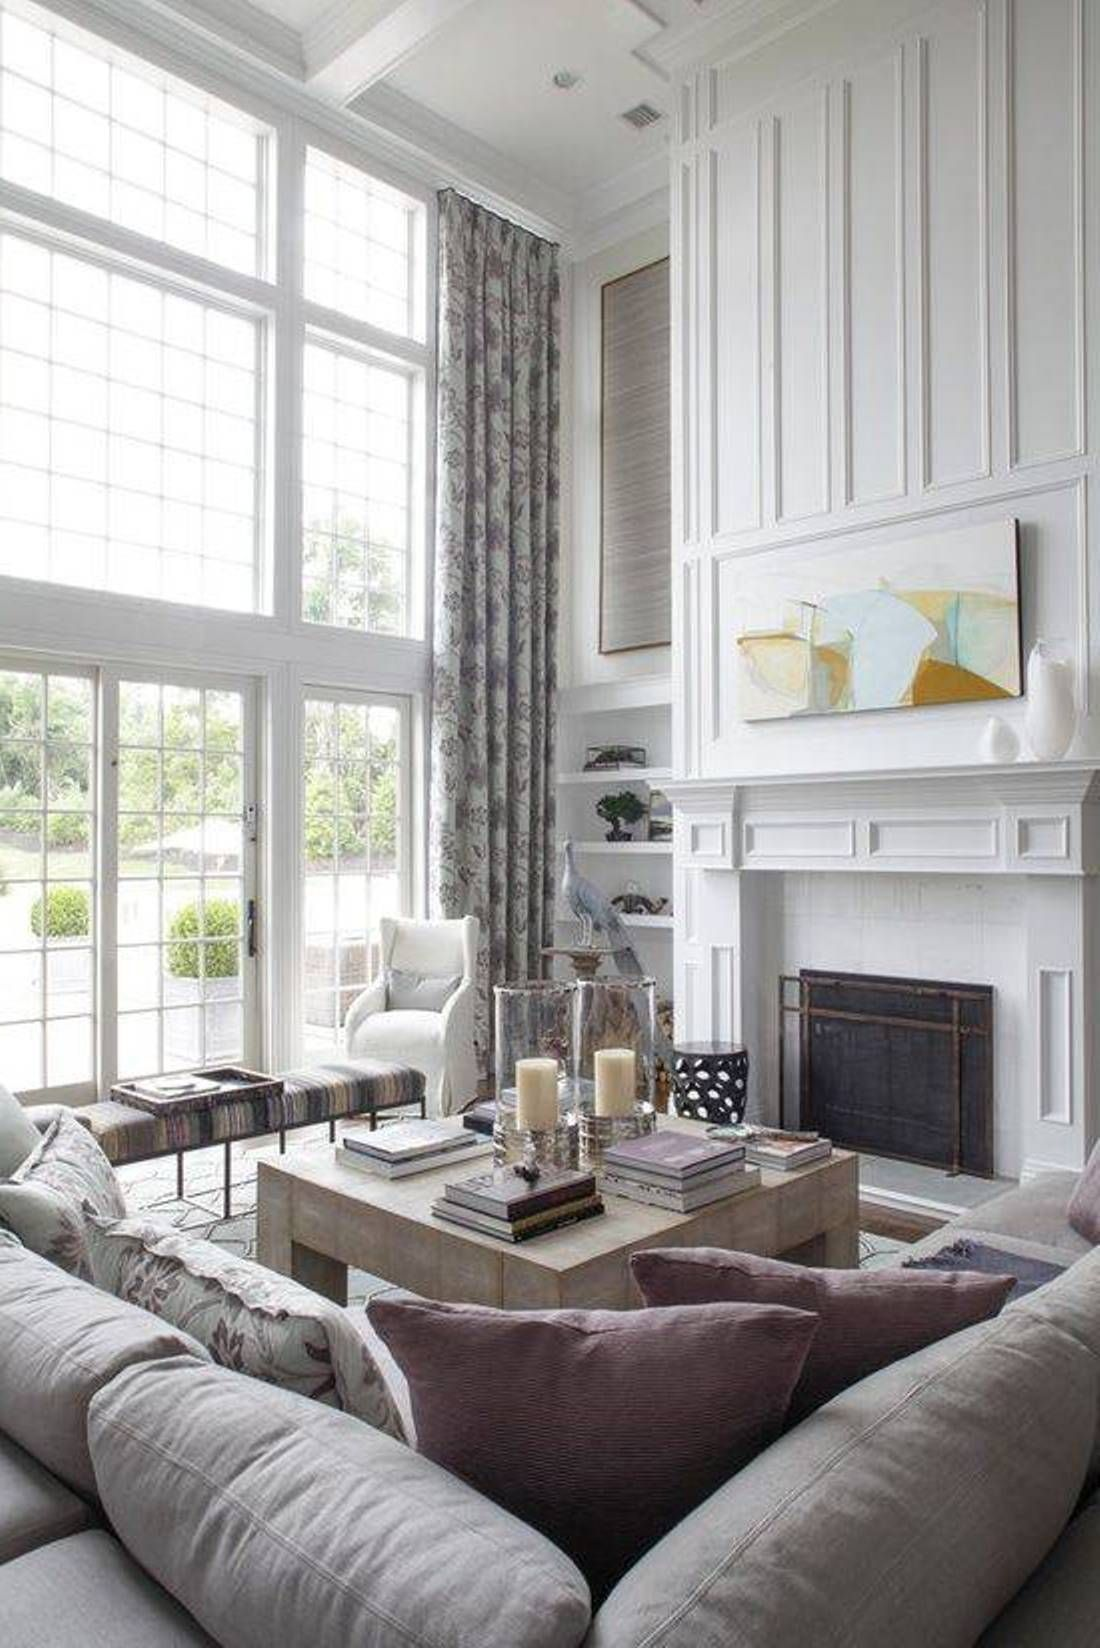 living room ideas for high ceilings high ceiling living on incredible tv wall design ideas for living room decor layouts of tv models id=96768